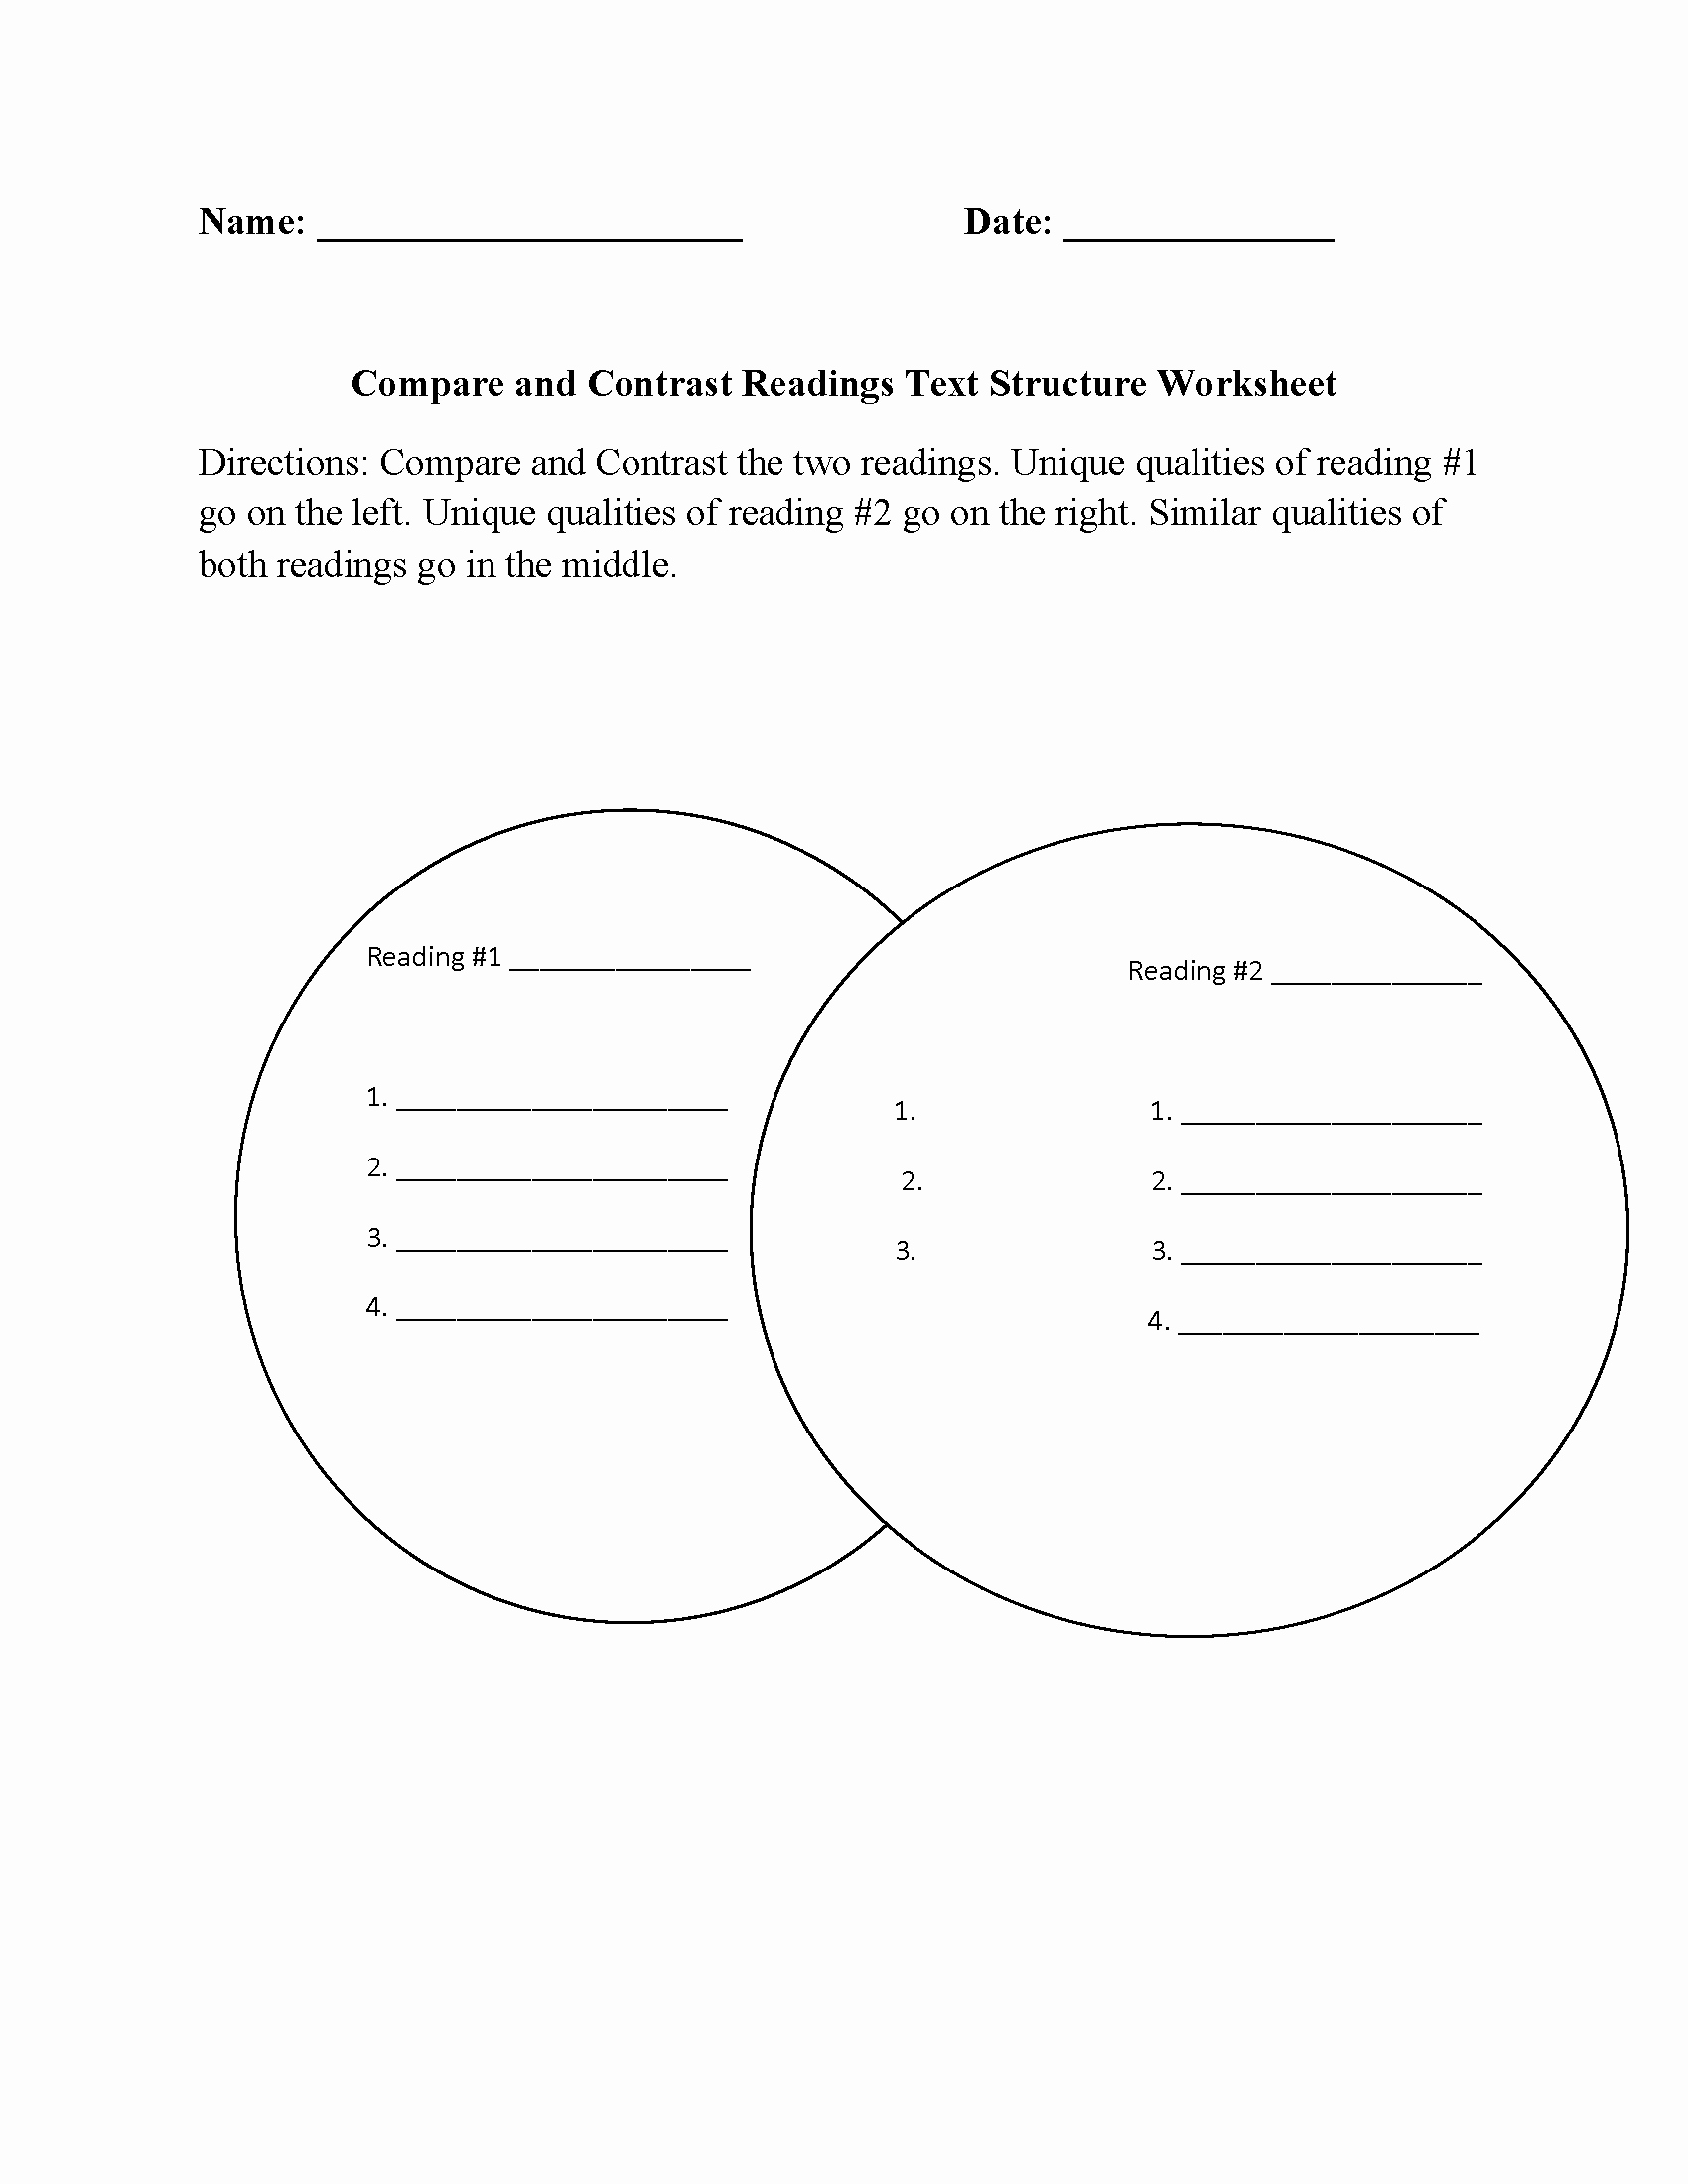 Text Structure Worksheet 4th Grade Best Of Pare and Contrast Readings Text Structure Worksheet